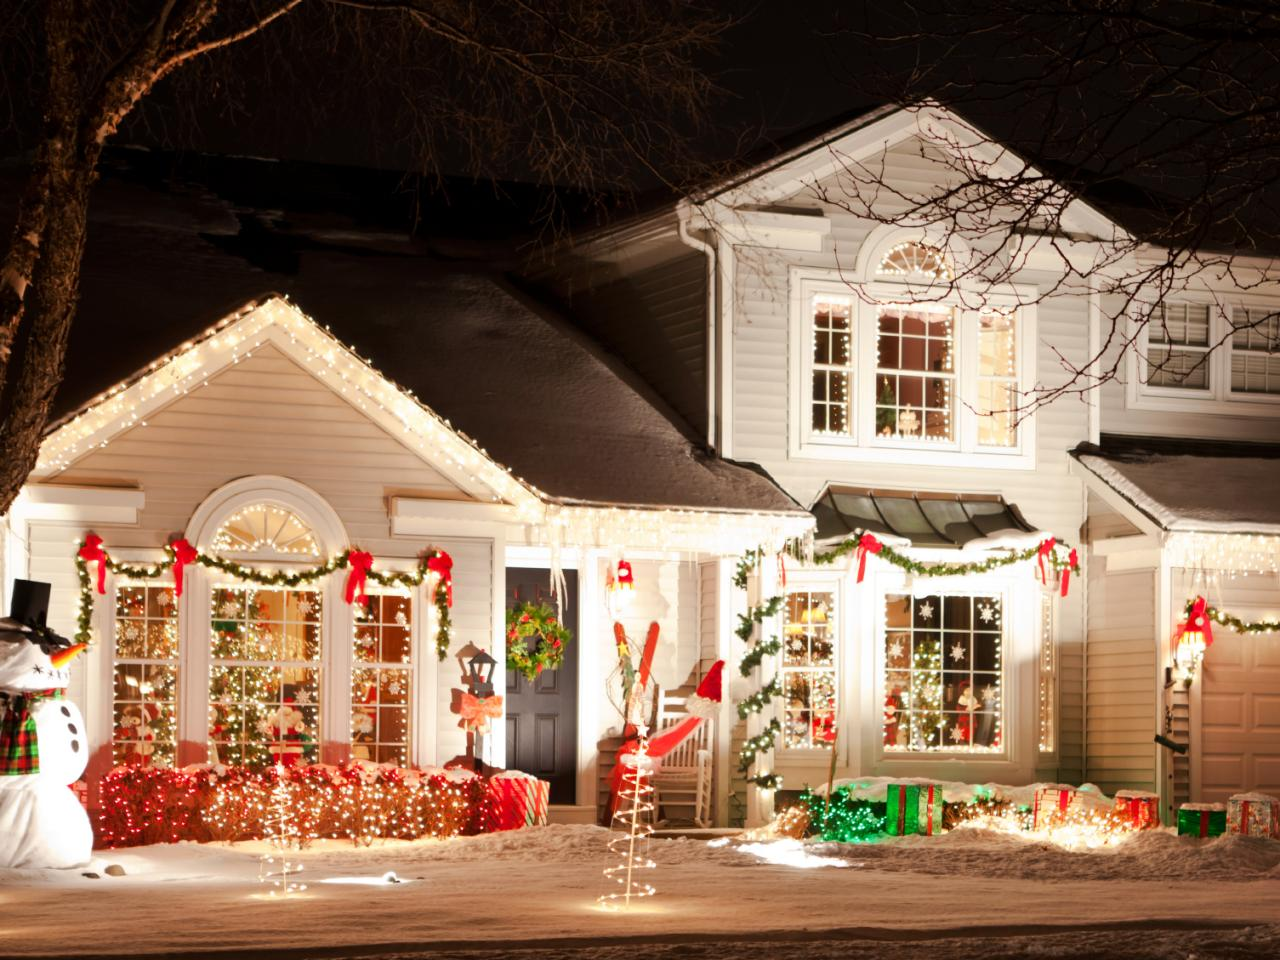 secret garden - How To Decorate A Ranch Style Home For Christmas